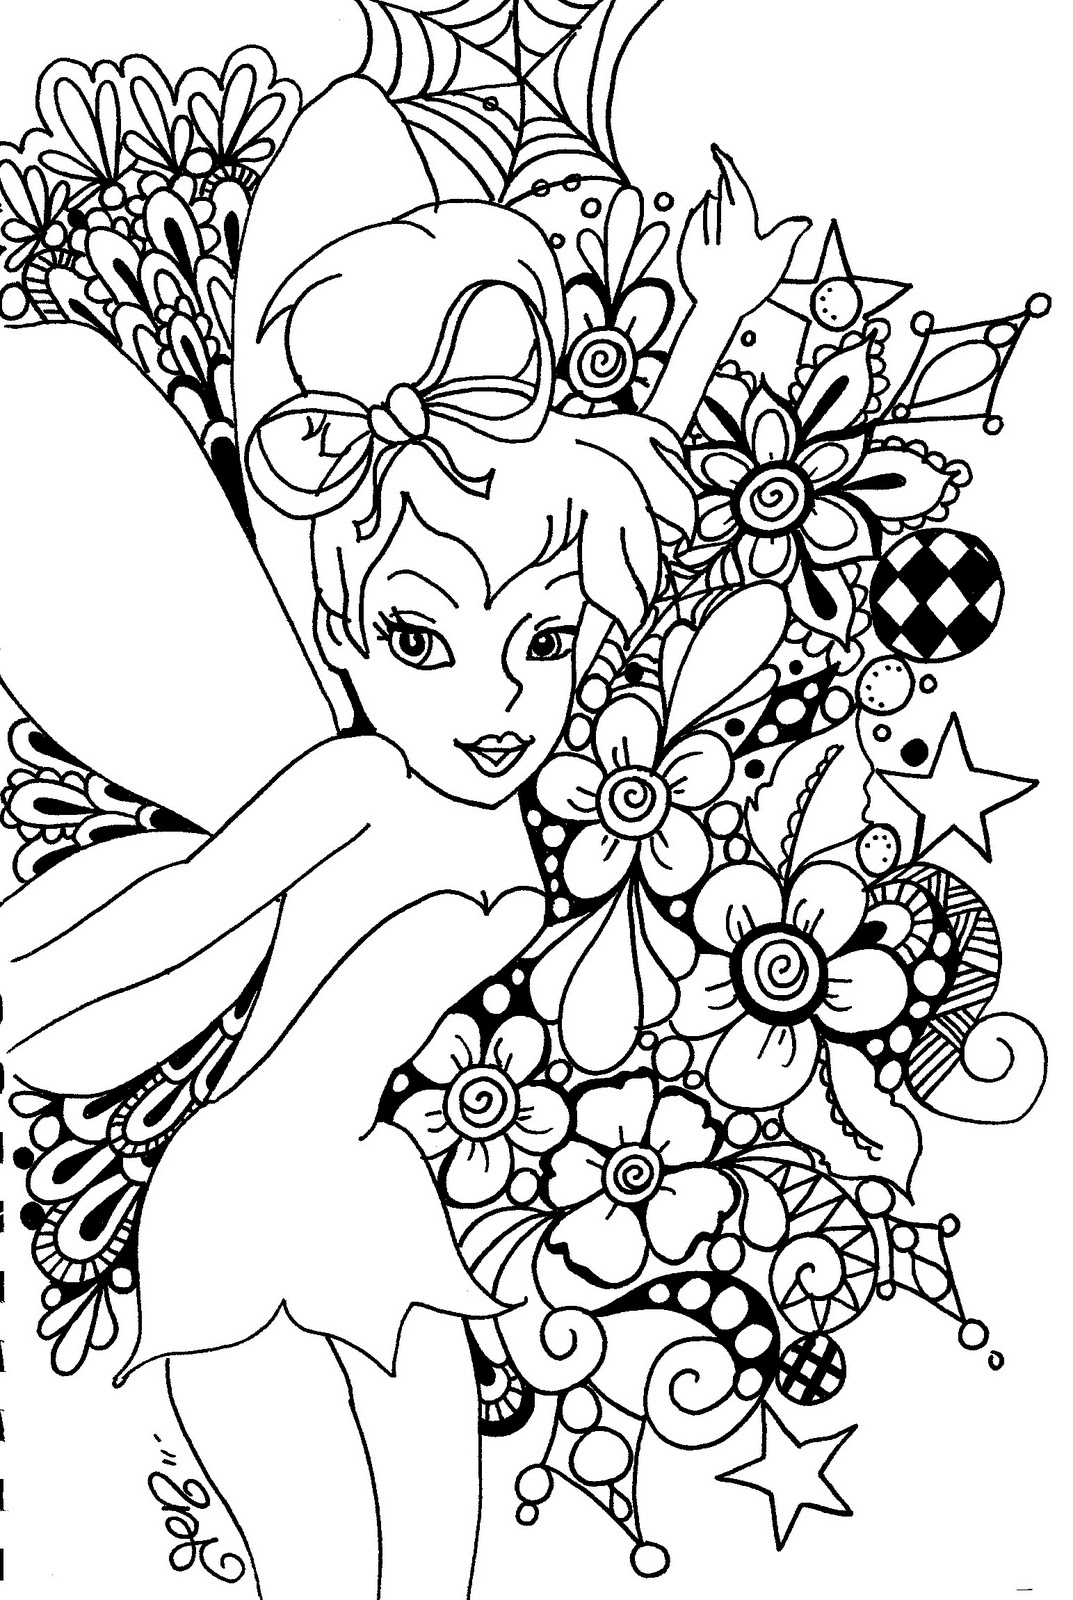 i love tinkerbell coloring pages - photo#7